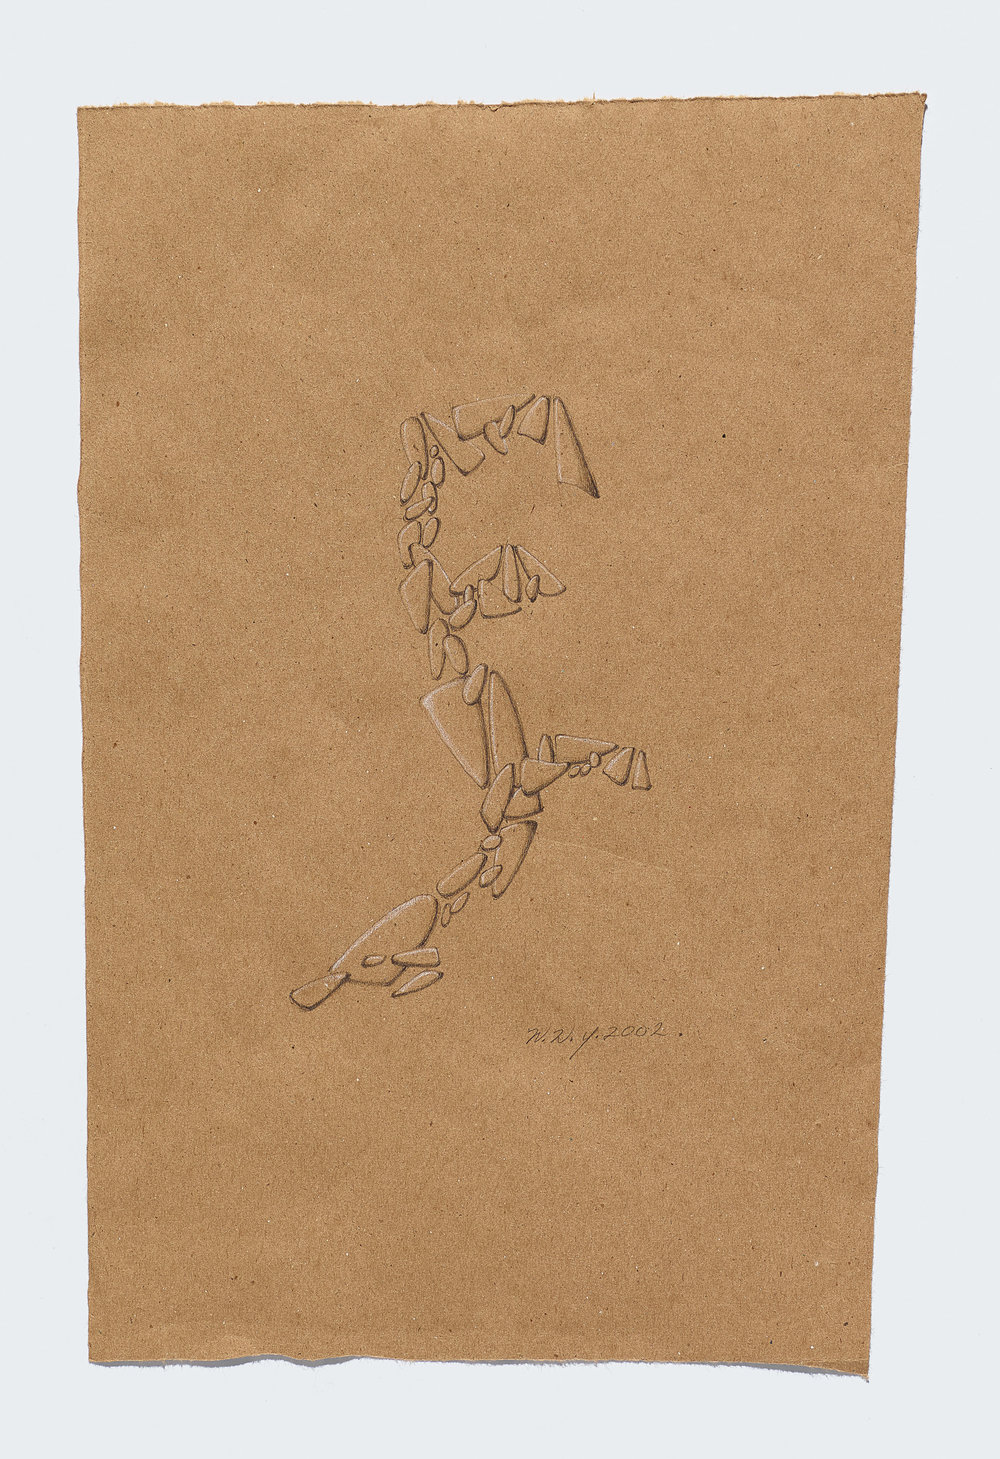 Willie Young, Untitled, 2002. Graphite on Paper, 13.5 x 8.5 in. Price on Request Reference 1899